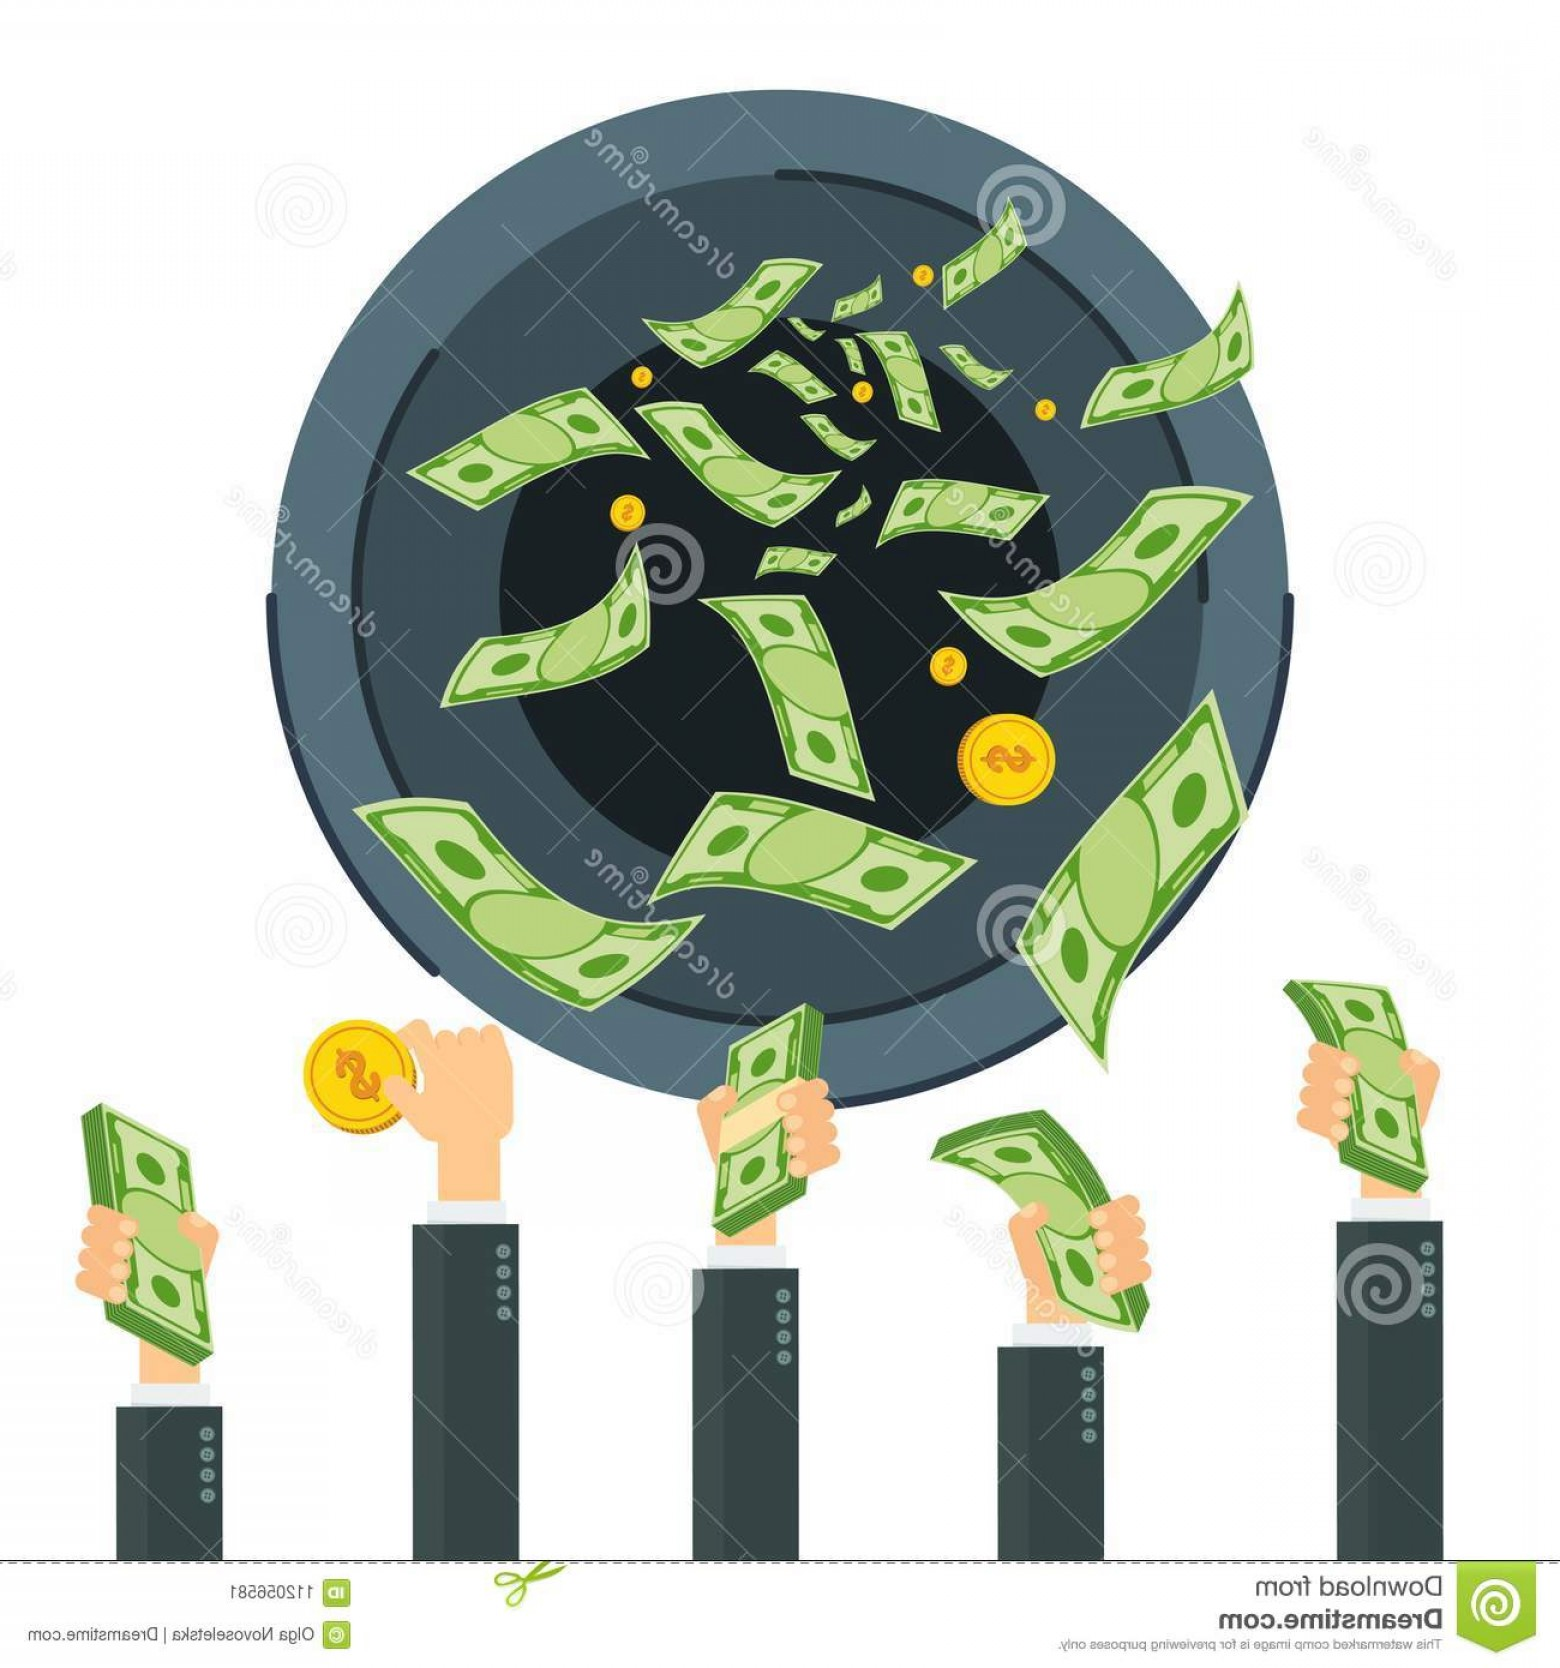 Vector Fly System: Wasting Money Concept Cash Flow Banknotes Fly Away Black Hole Bankruptcy Collapse Monetary System Flat Vector Cartoon Image